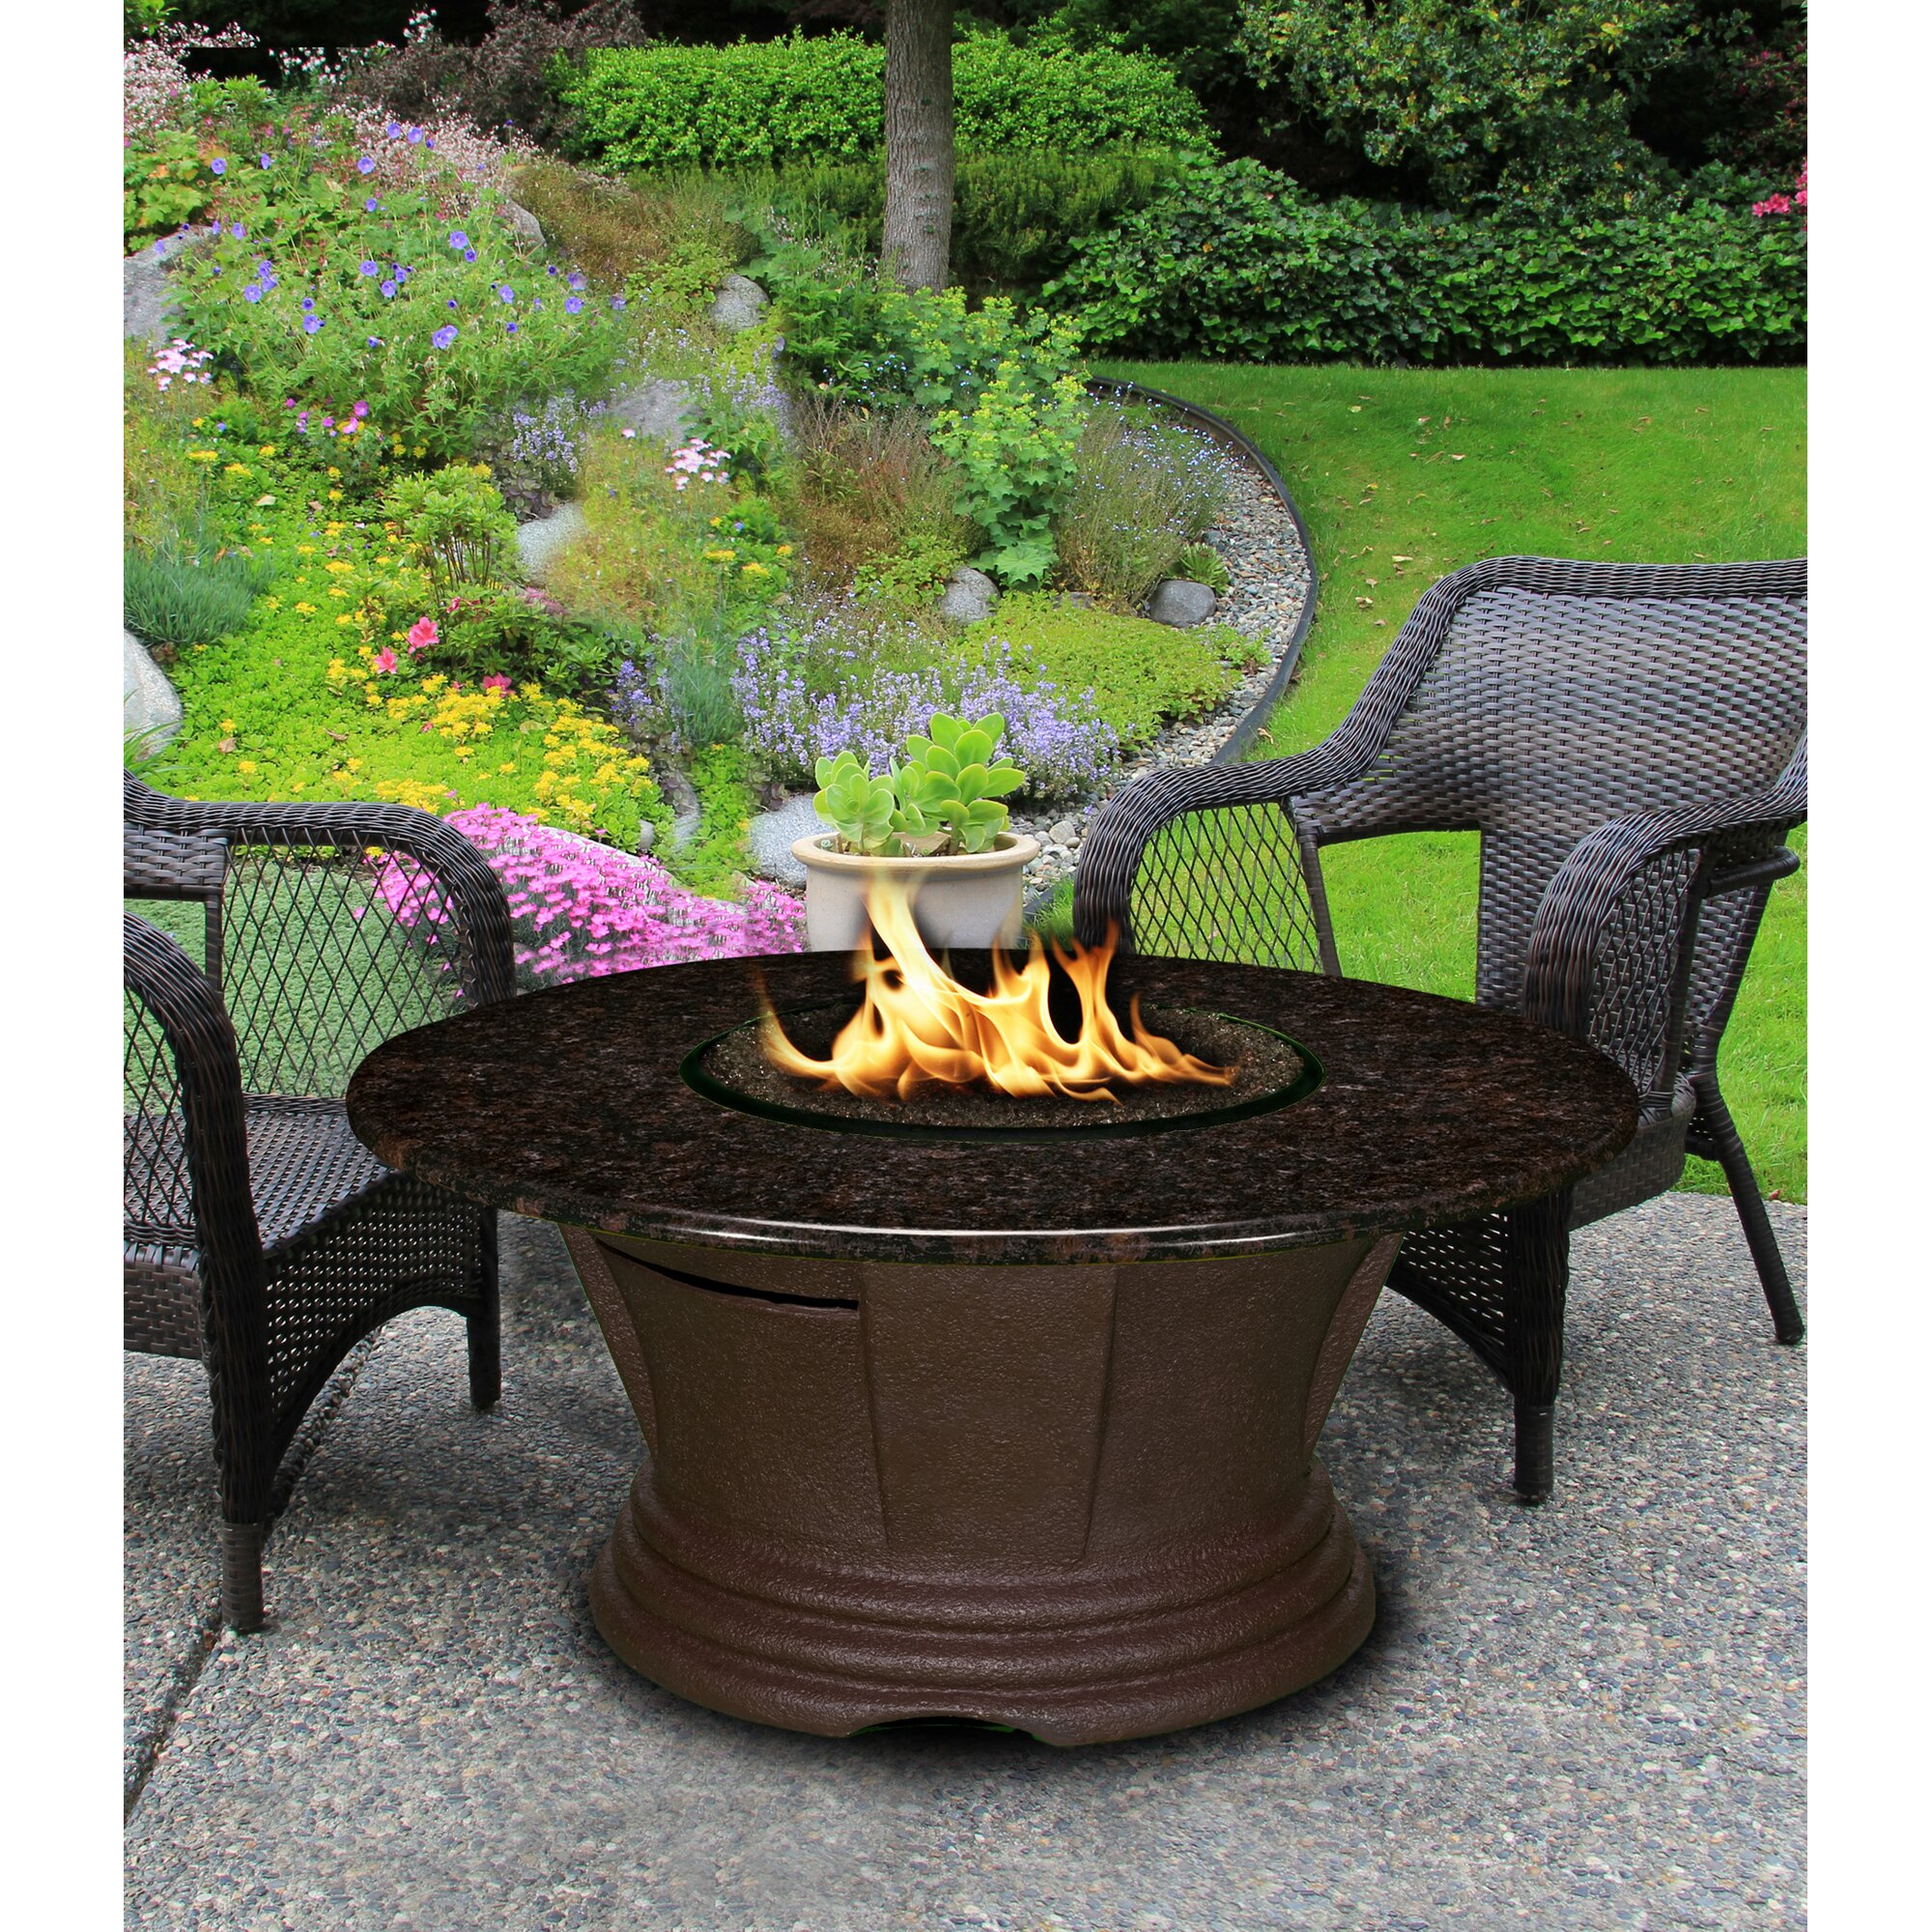 California Outdoor Concepts San Simeon Stainless Steel